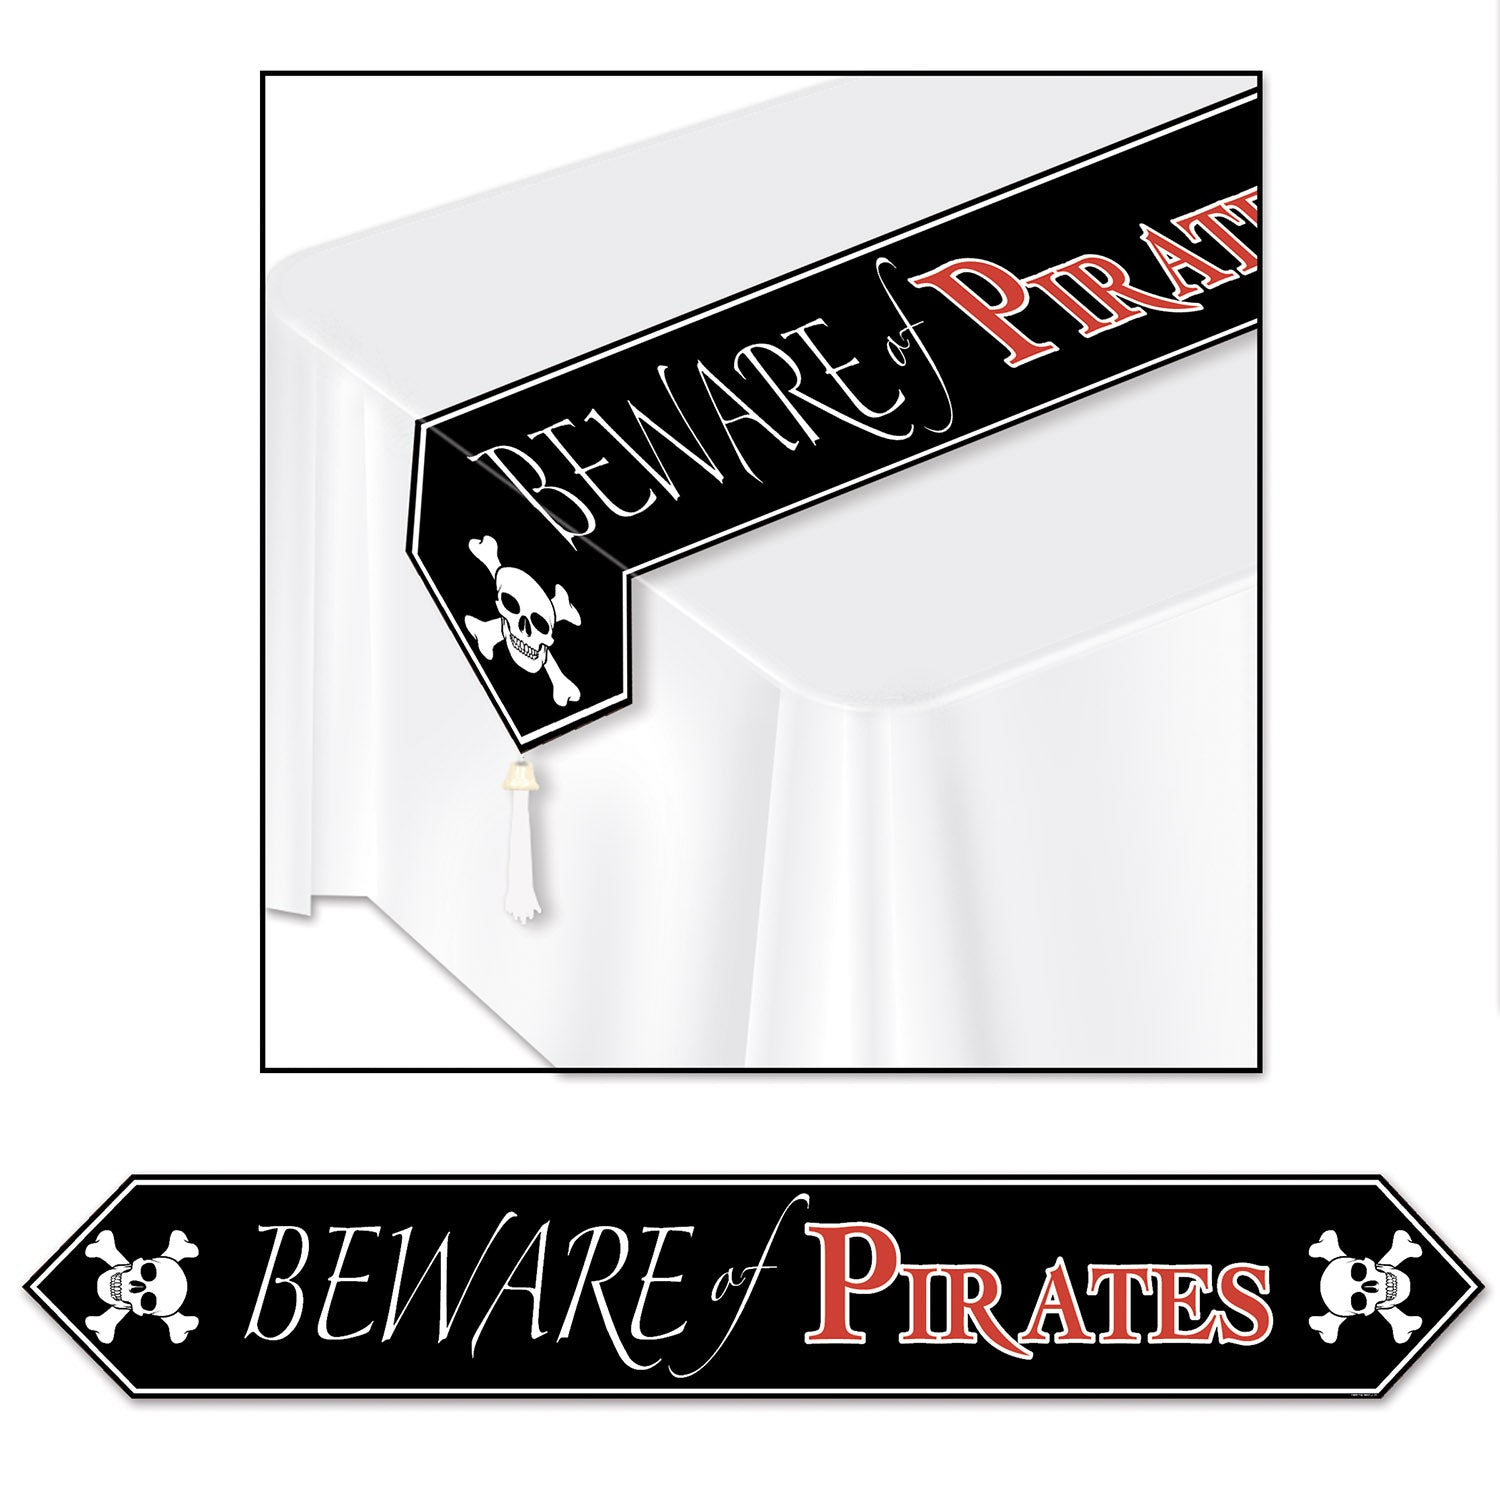 Printed Beware Of Pirates Table Runner by Beistle - Pirate Theme Decorations